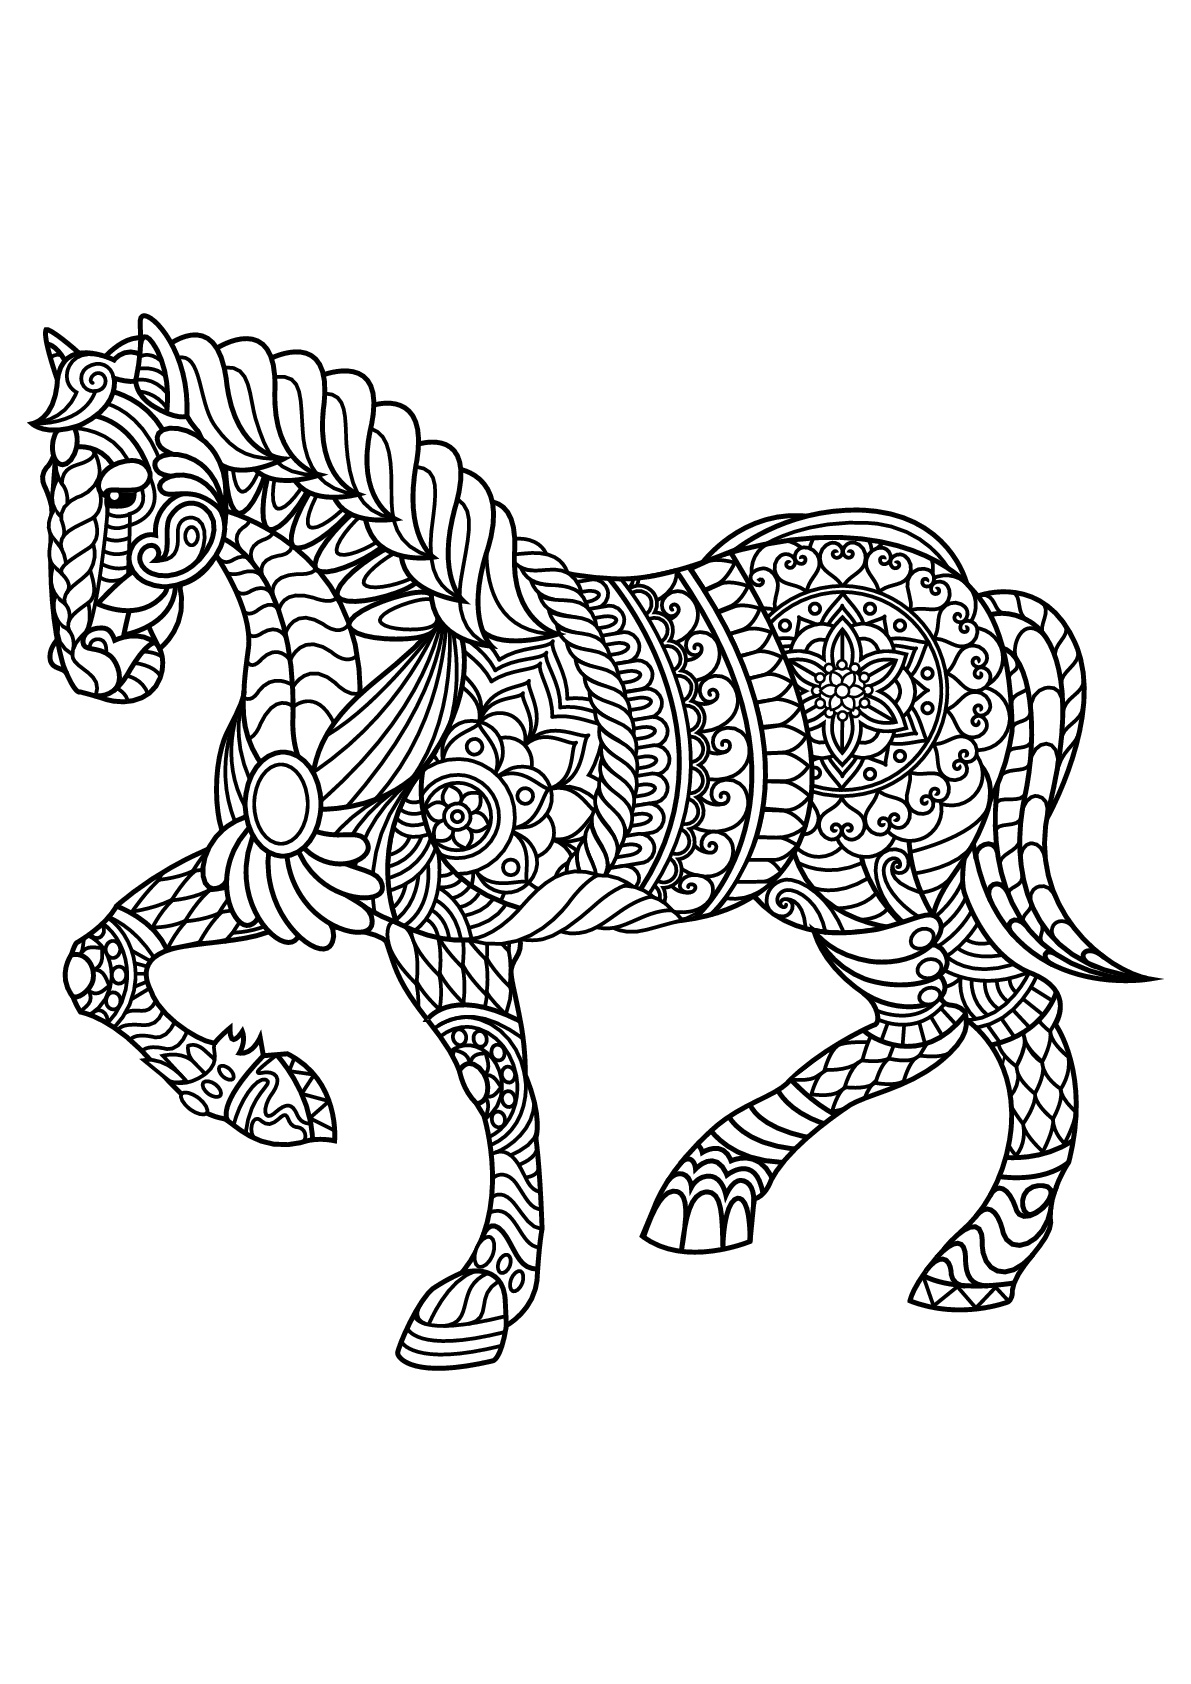 Horse coloring page to download : trotting horse (2)